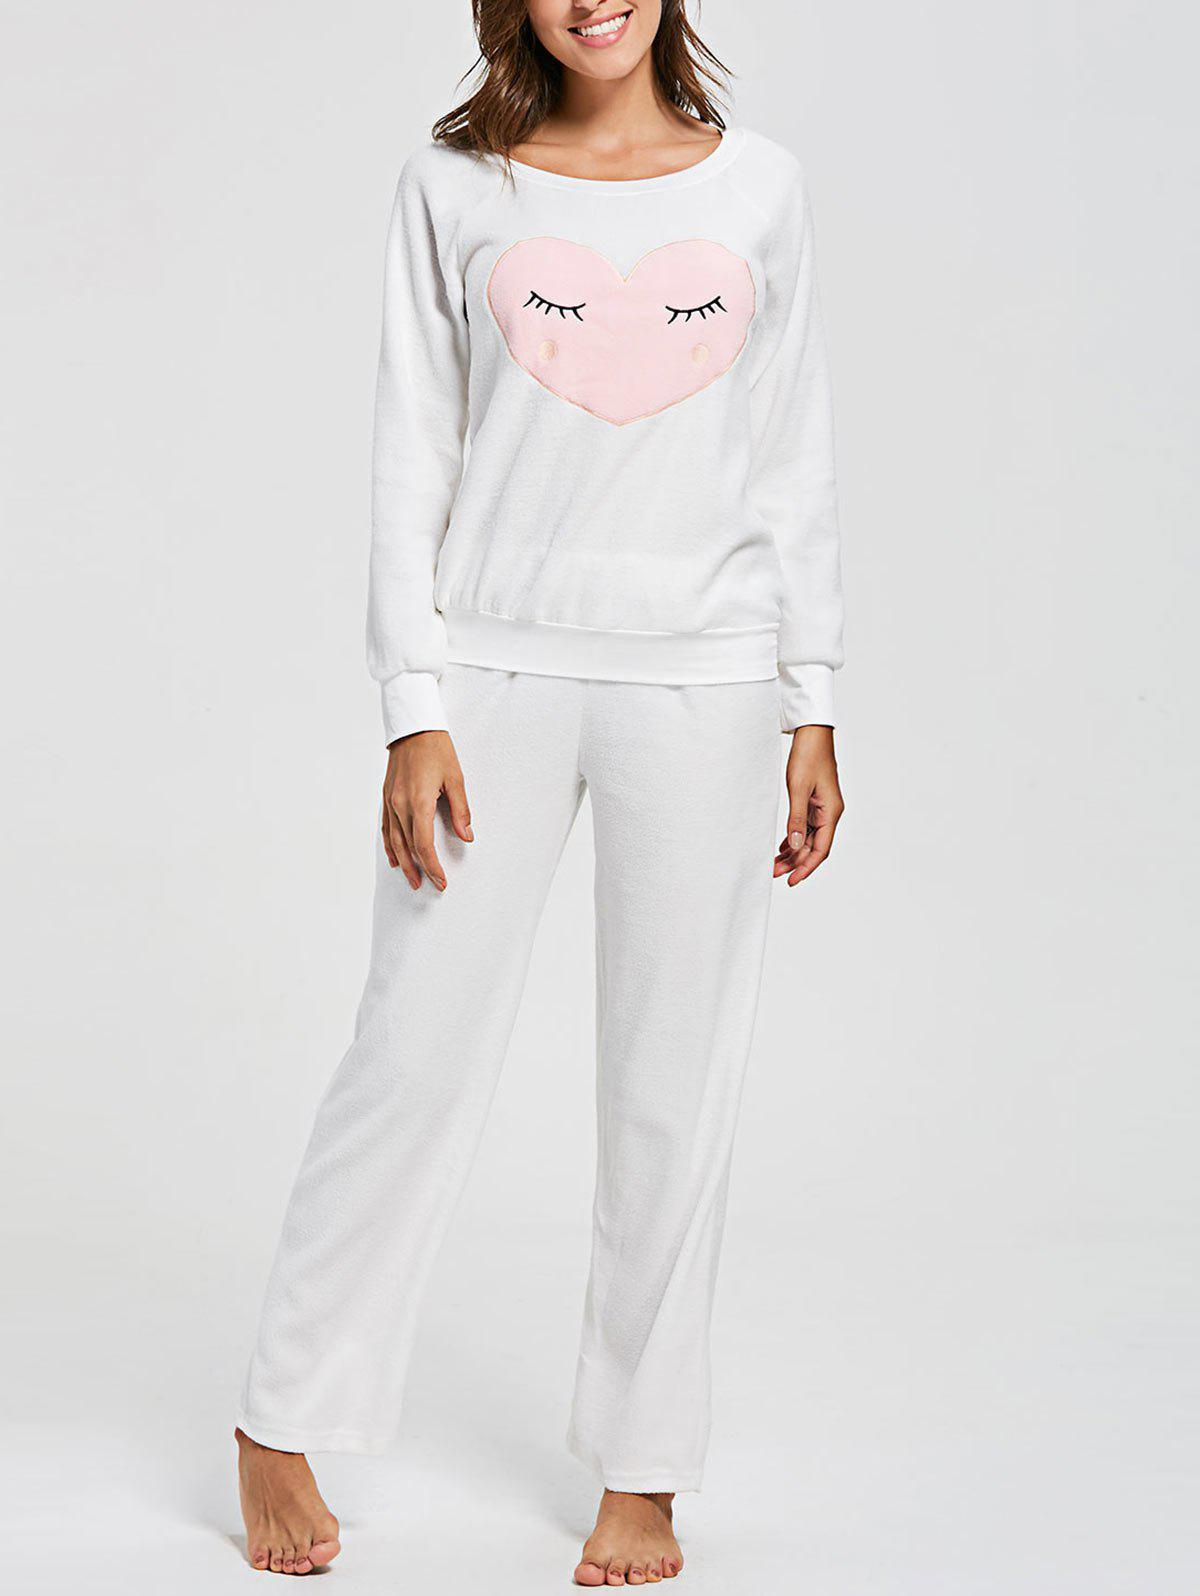 Heart Panel Fleece Sweatshirt with Pants Loungewear Set - WHITE L